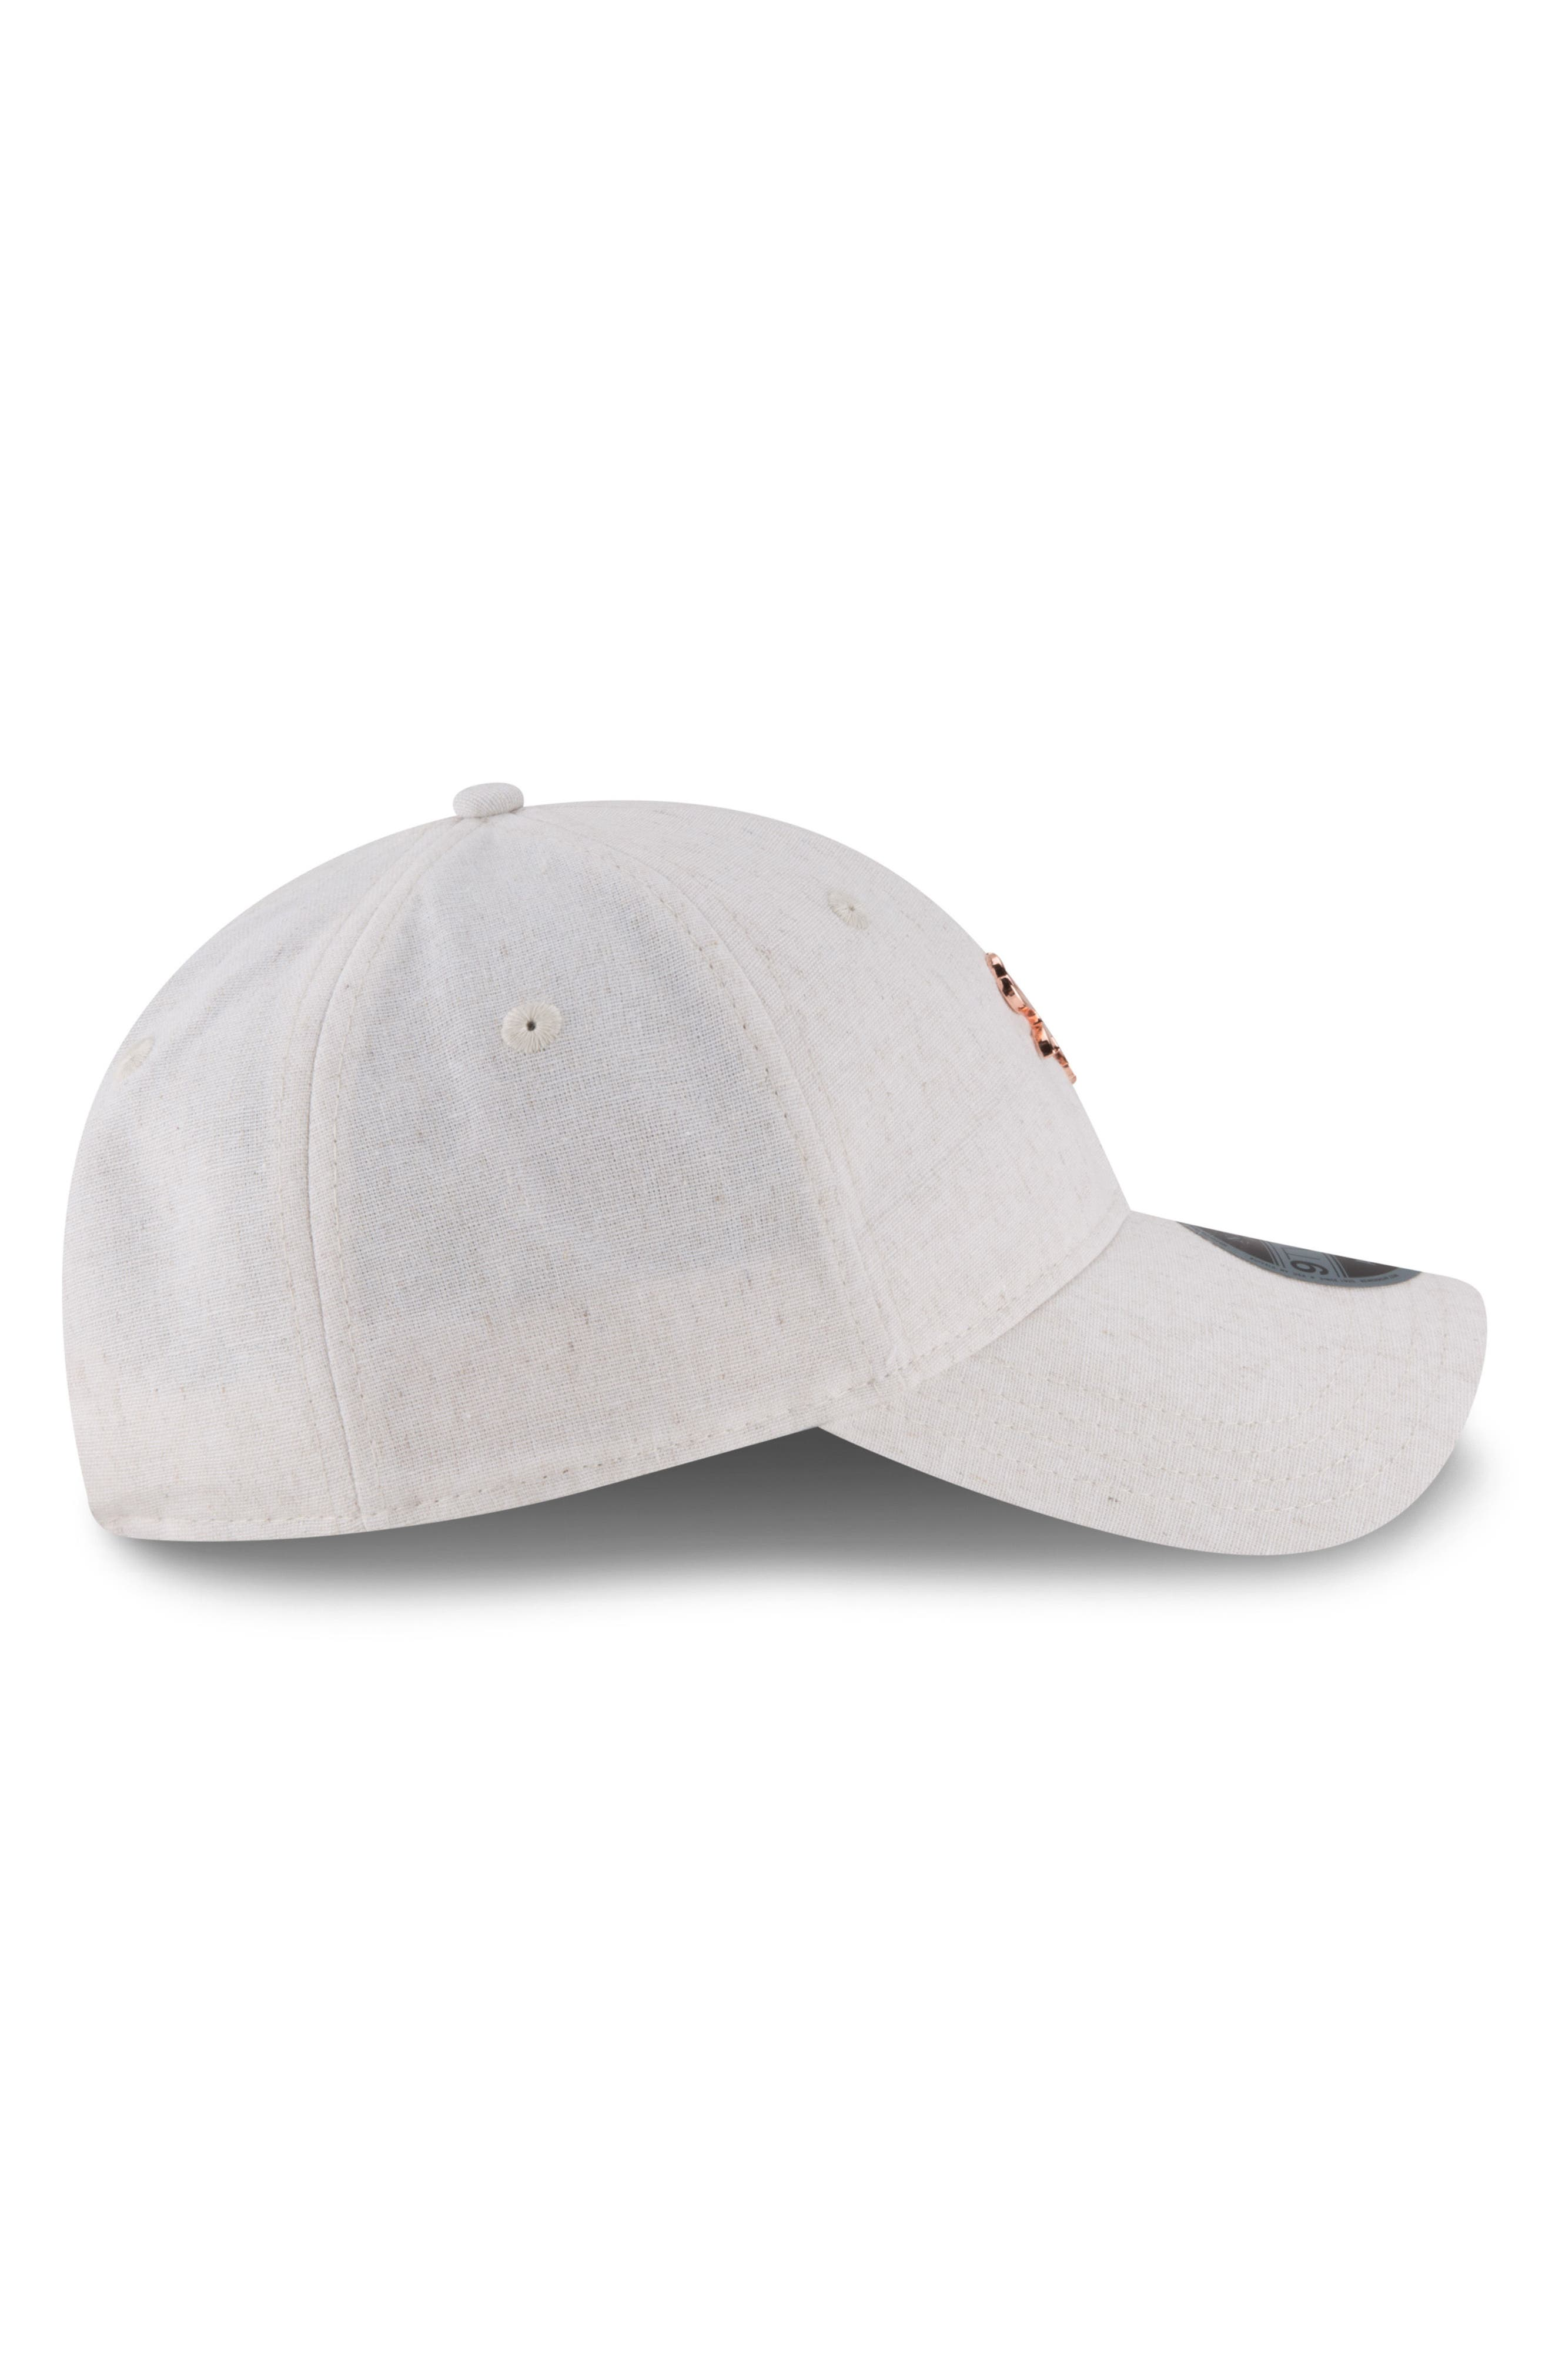 MLB Badged Black Label Linen & Cotton Ball Cap,                             Alternate thumbnail 3, color,                             CHICAGO WHITE SOX